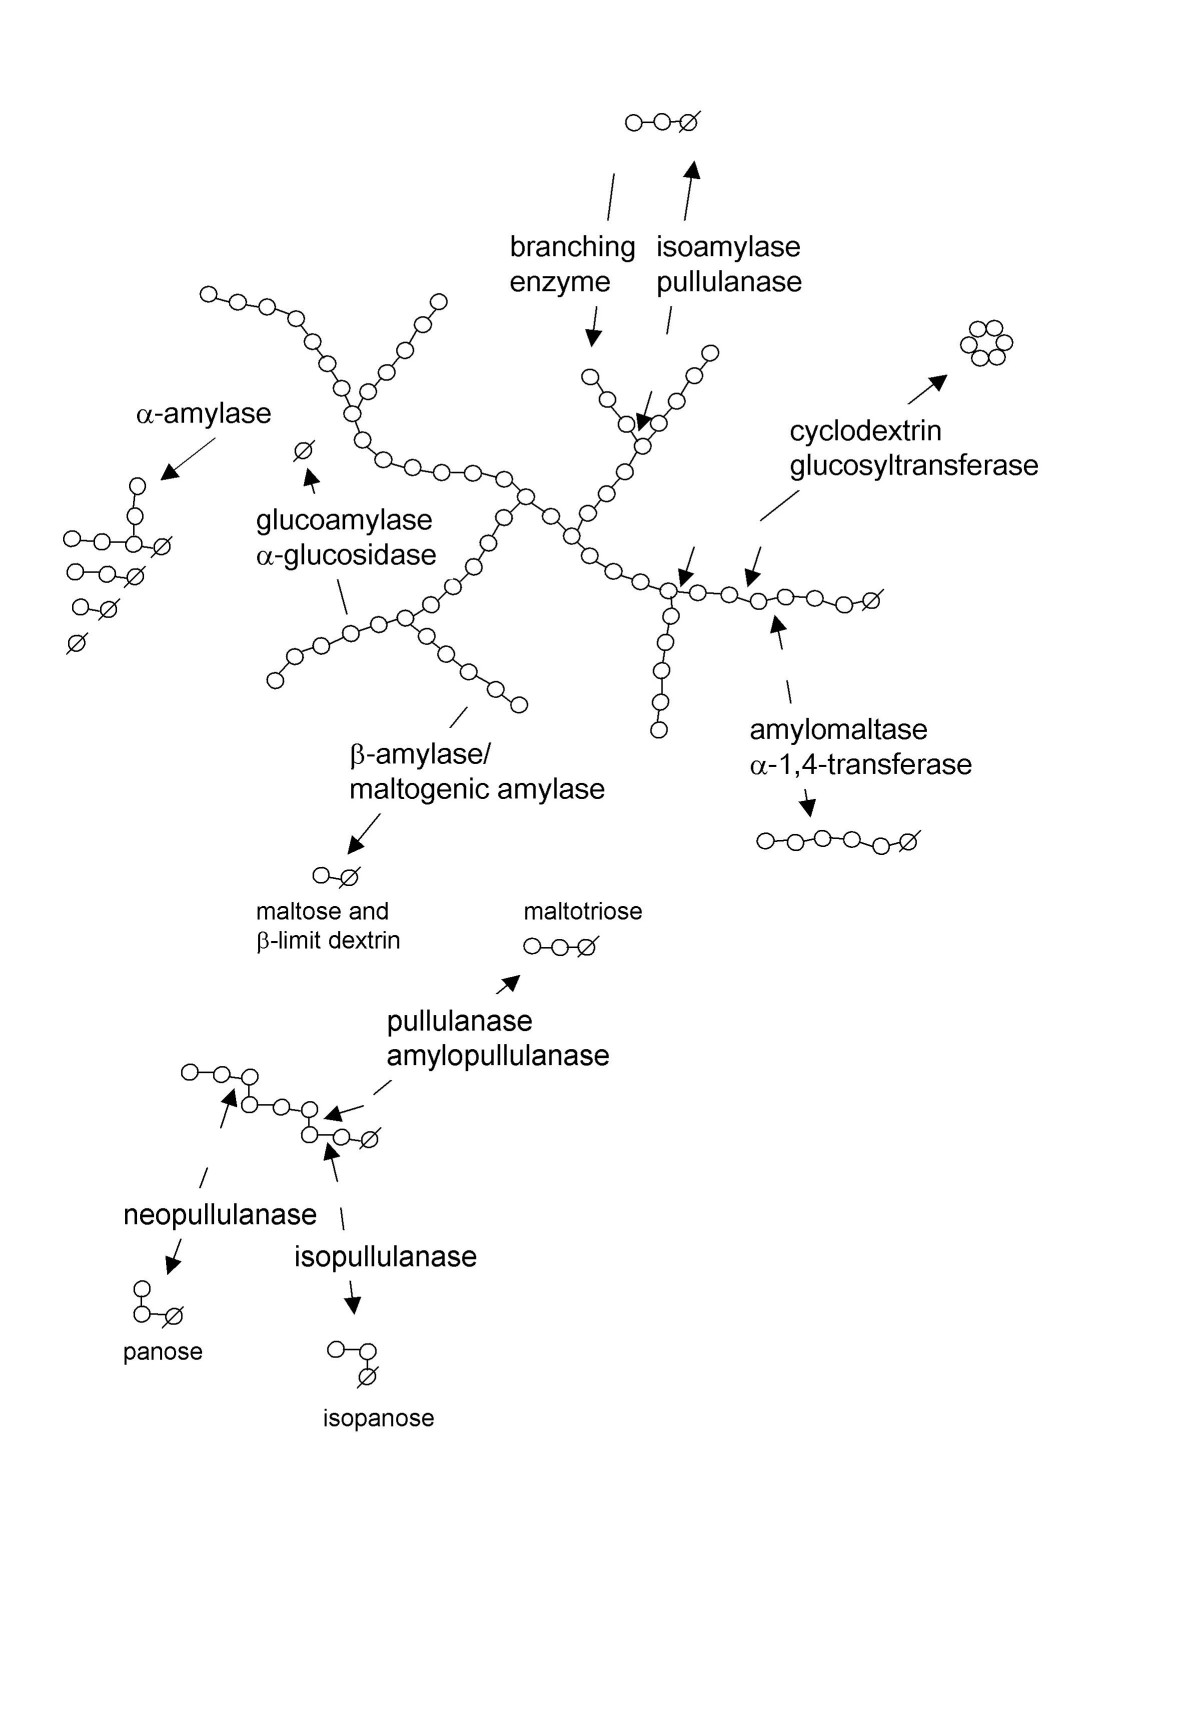 http://static-content.springer.com/image/art%3A10.1186%2F1475-2859-6-9/MediaObjects/12934_2007_Article_252_Fig2_HTML.jpg